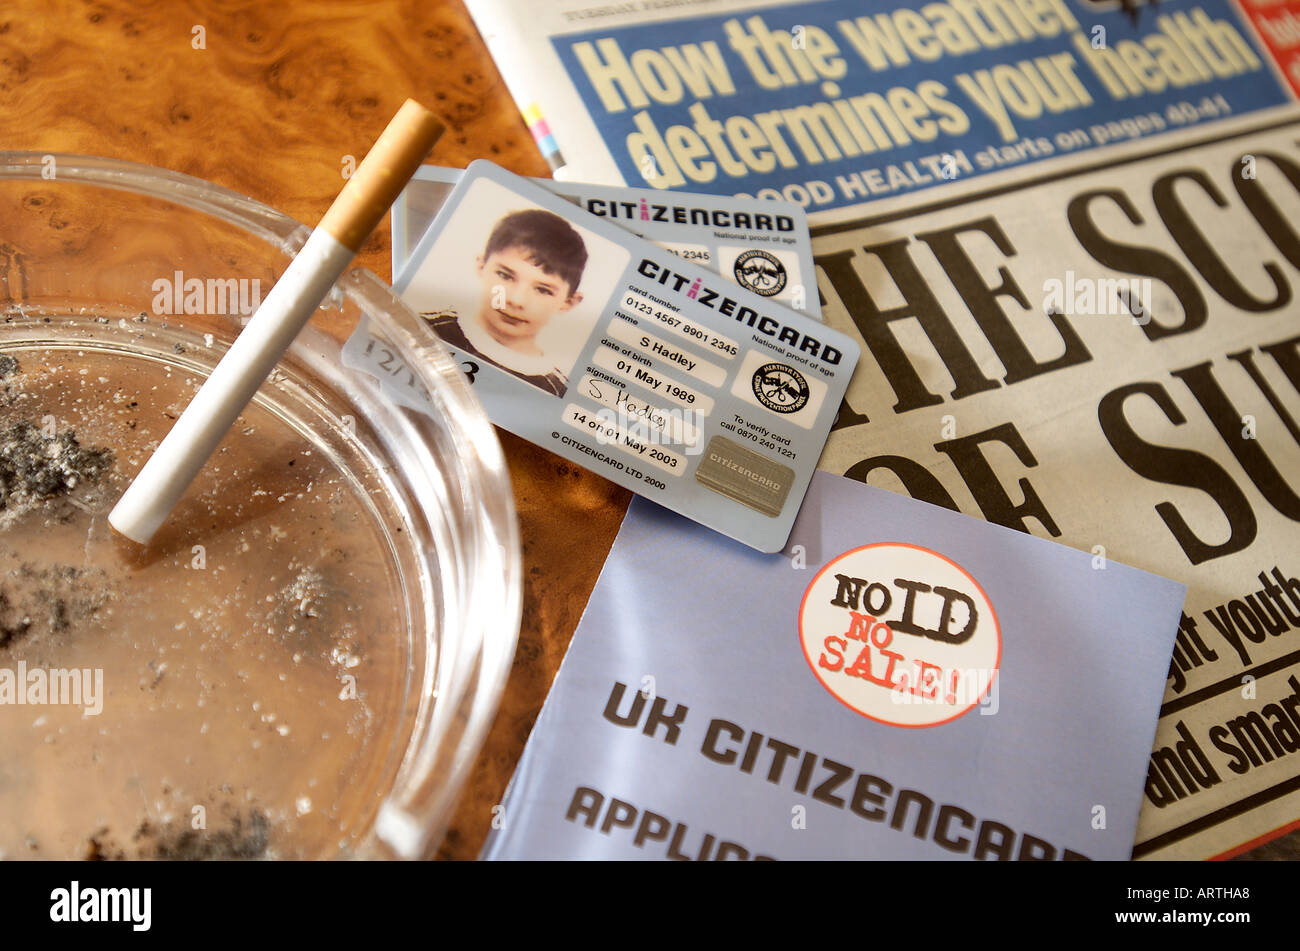 British (Welsh) Young Persons Identity card with lit cigarette. - Stock Image